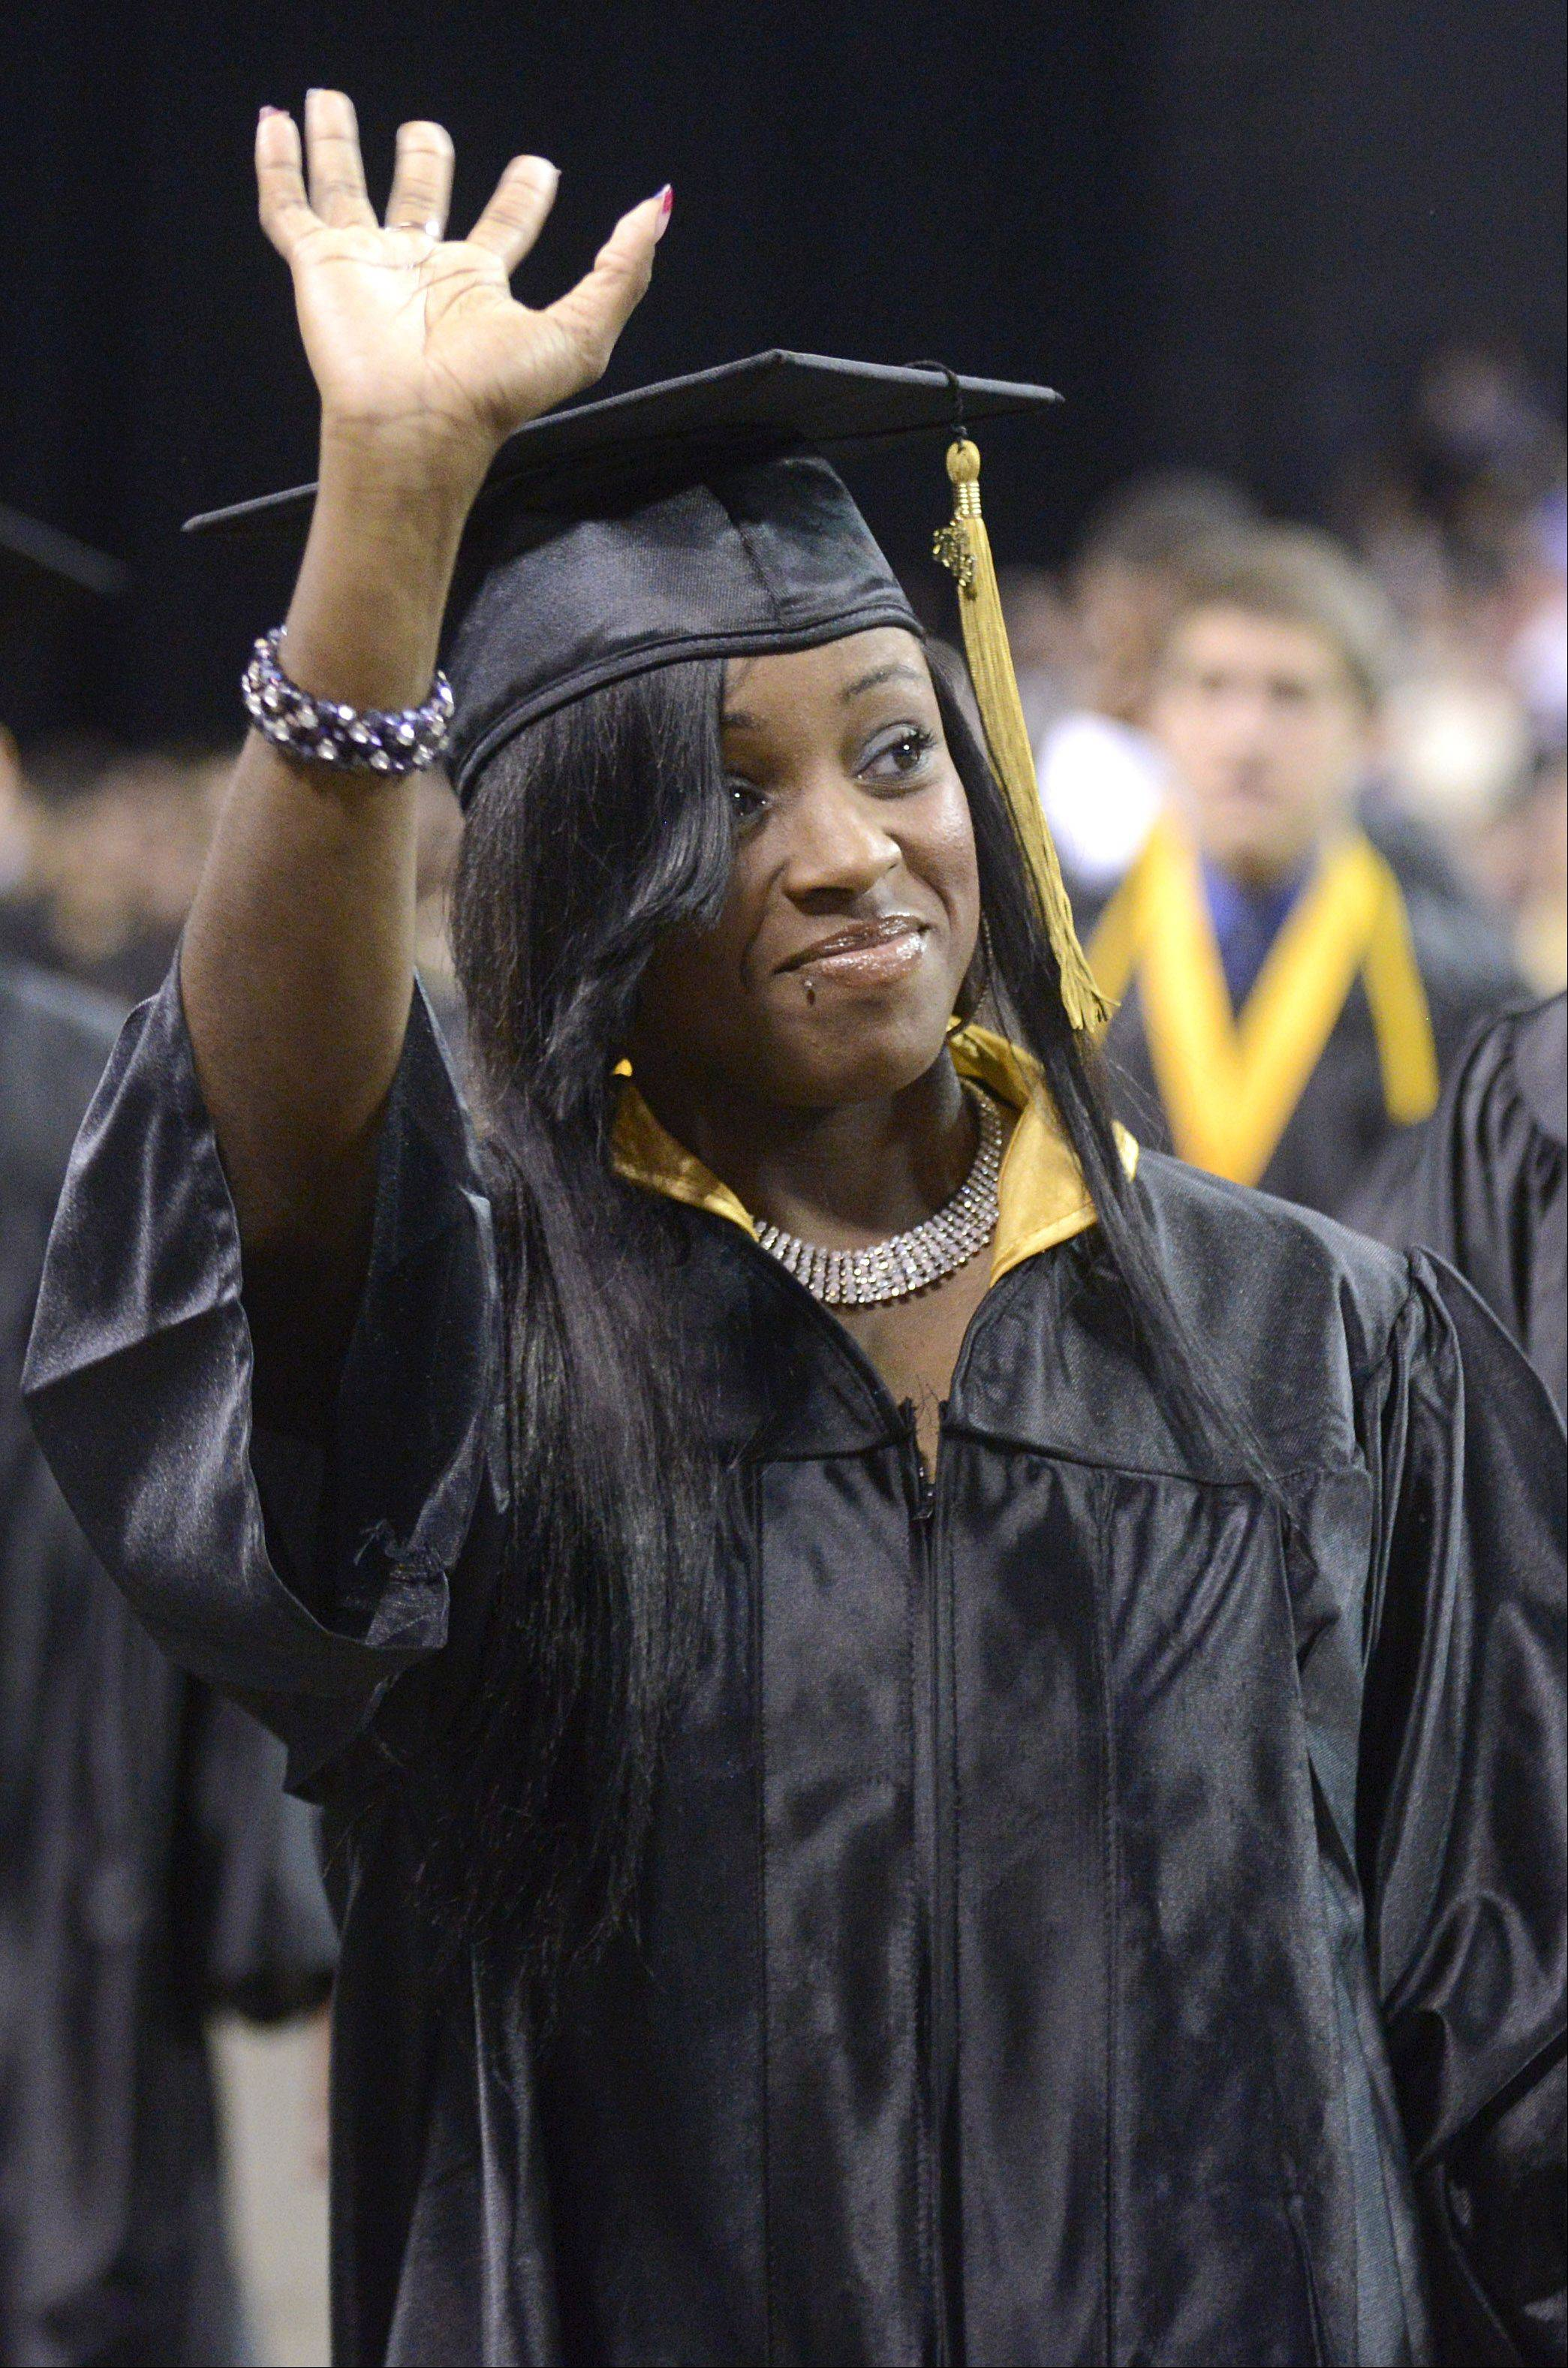 Donielle Ward waves to family as she exits the floor at Streamwood High School's commencement ceremony at the Sears Centre in Hoffman Estates on Saturday, May 25.